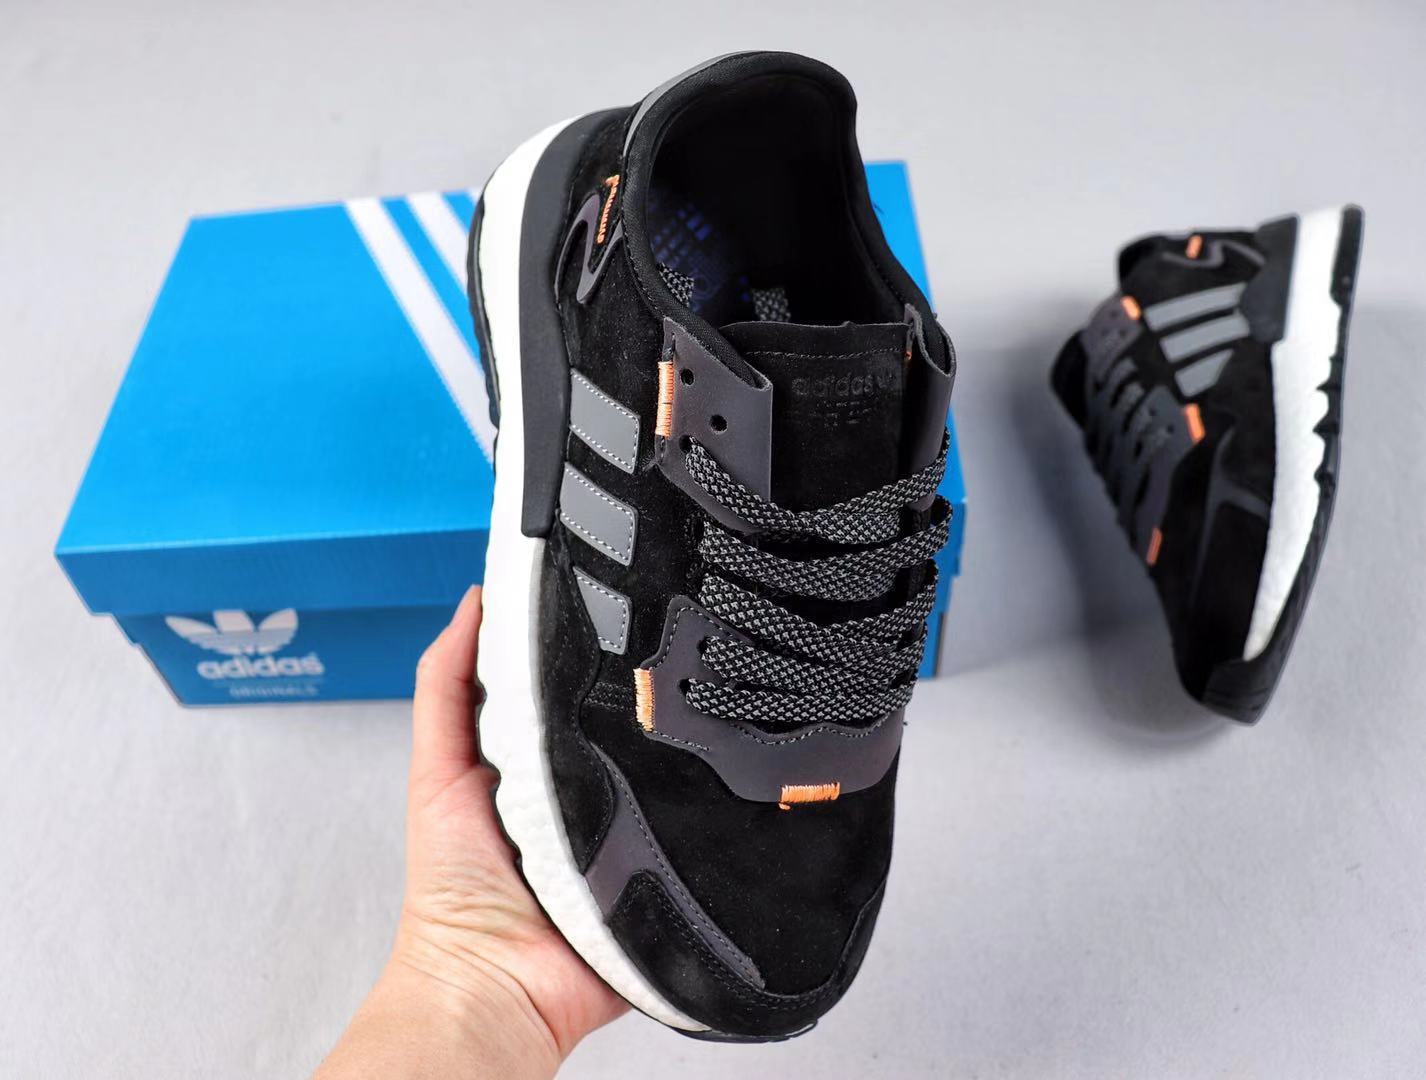 Adidas Nite Jogger 2019 Boost EG4933 Black/Dark Grey Running Shoes Hot Sale